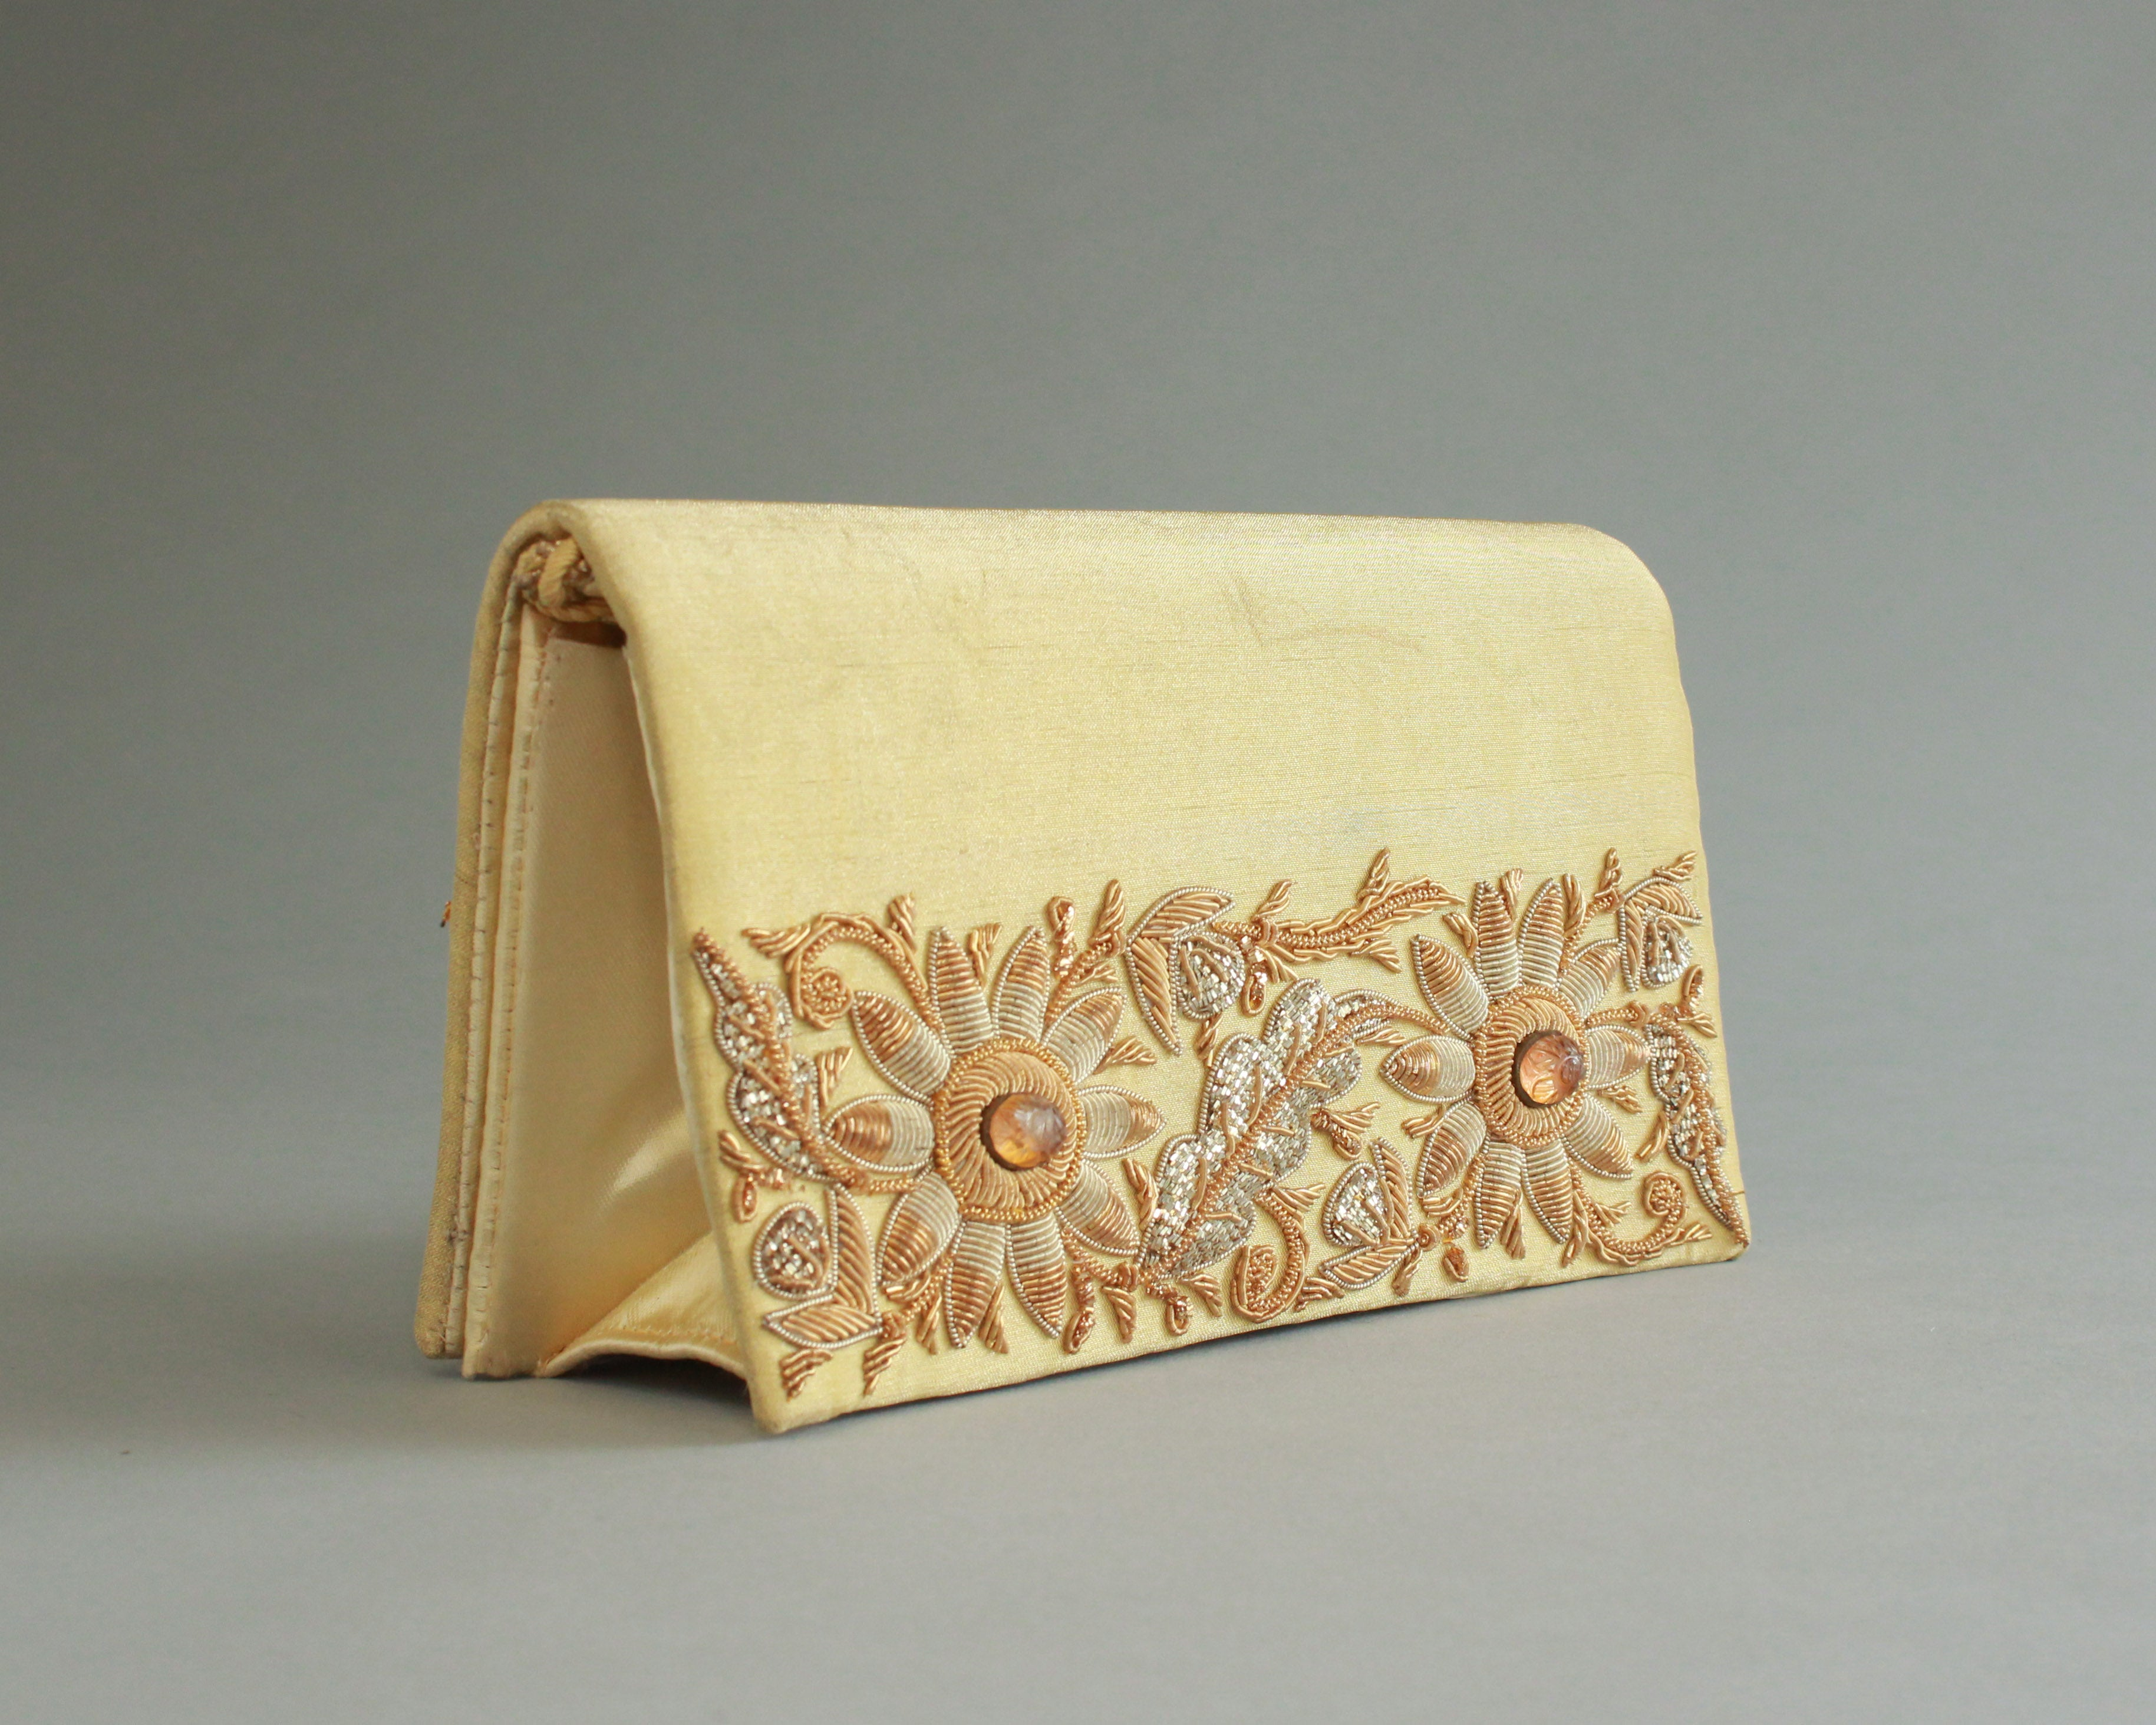 Gold beaded and embroidered satin evening bag handmade in India